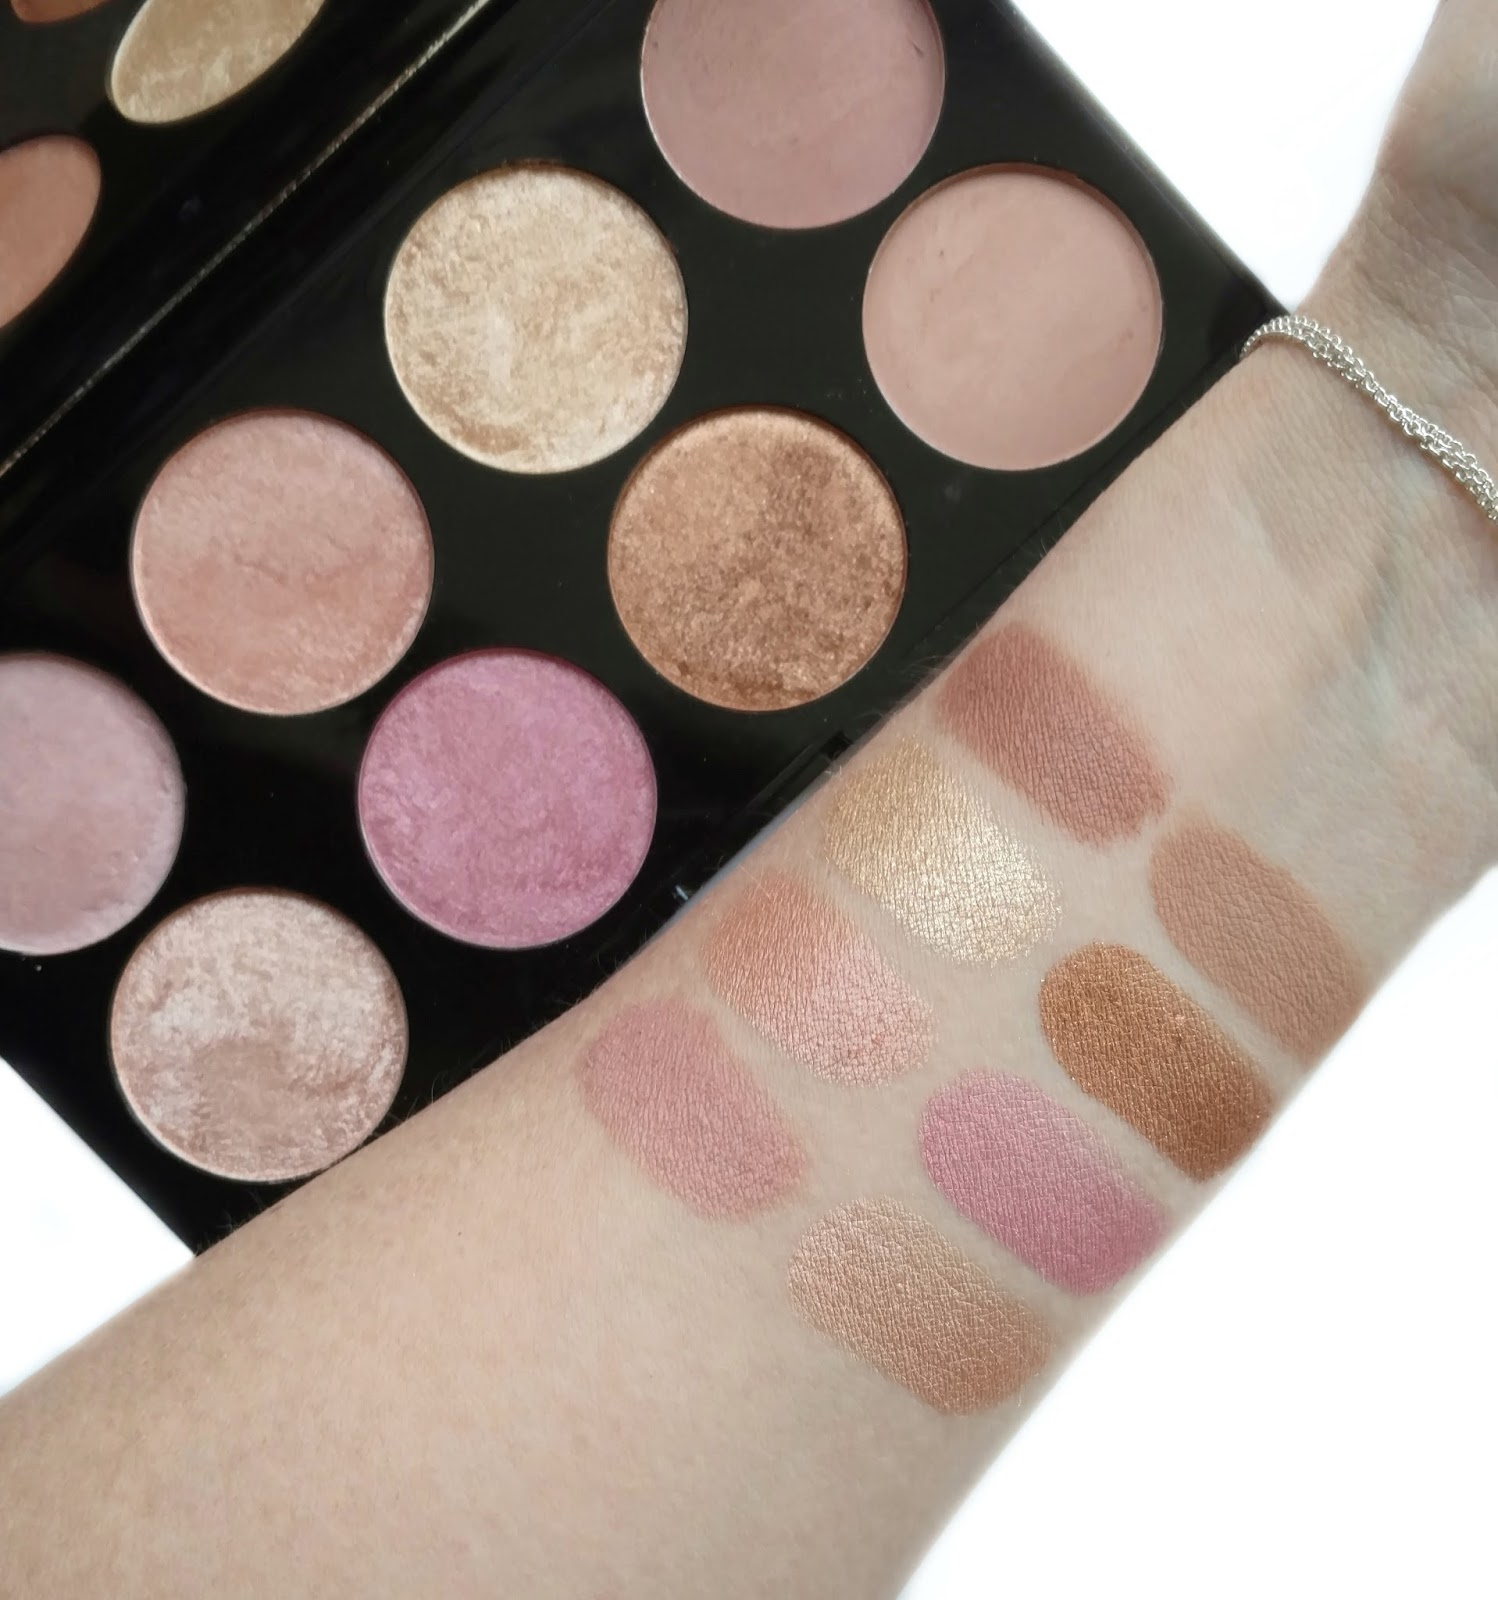 Because of the shade selection, I feel that this palette would be best suited toward fair to medium skin and may not show up on deeper skin tones.